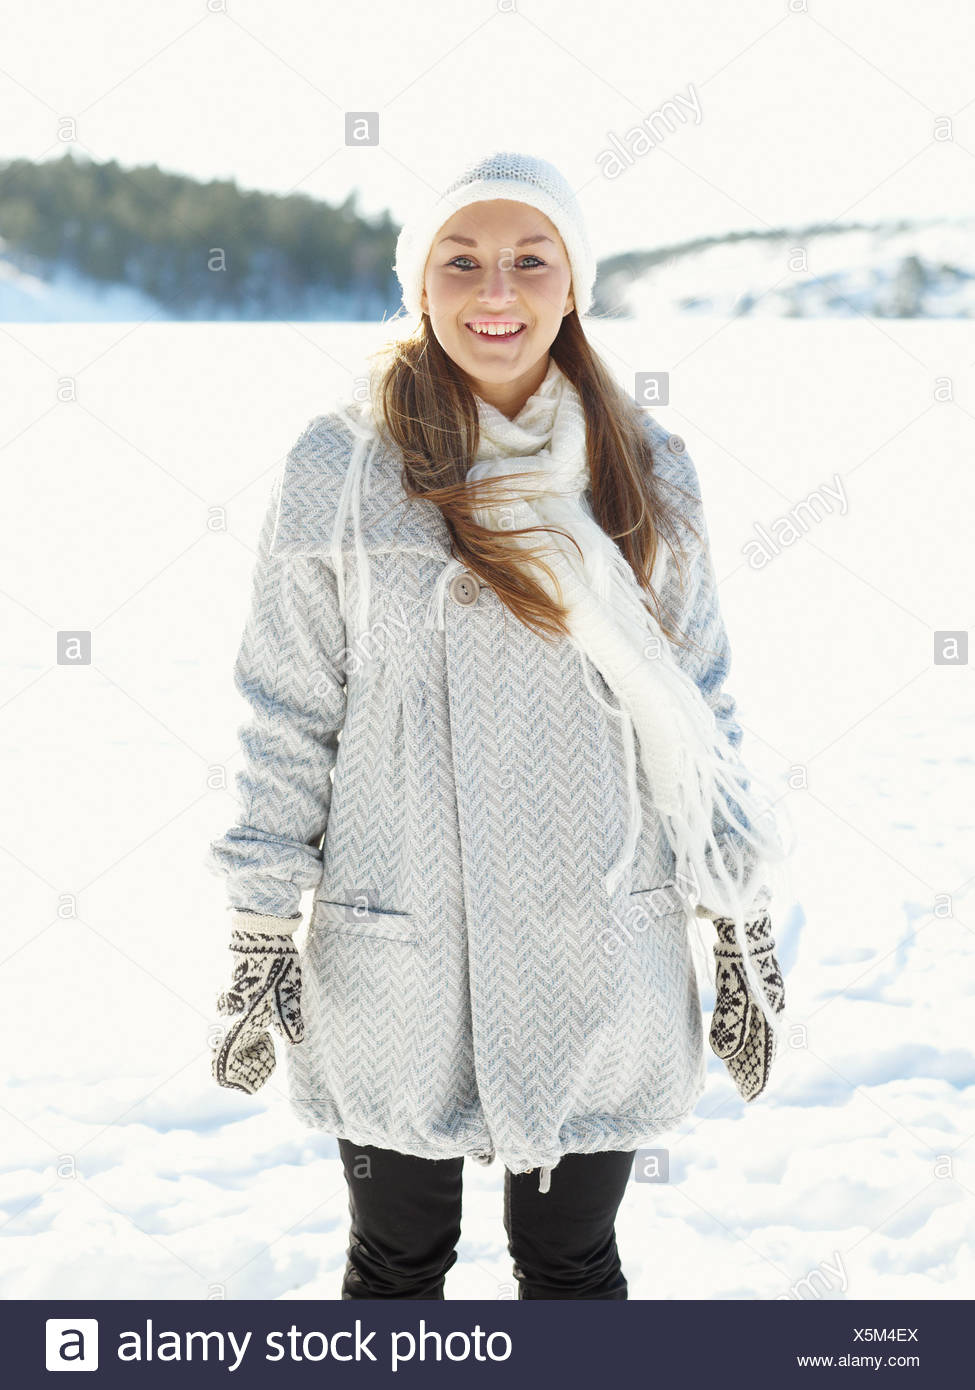 Portrait of young woman wearing white hat and white wooly scarf - Stock Image